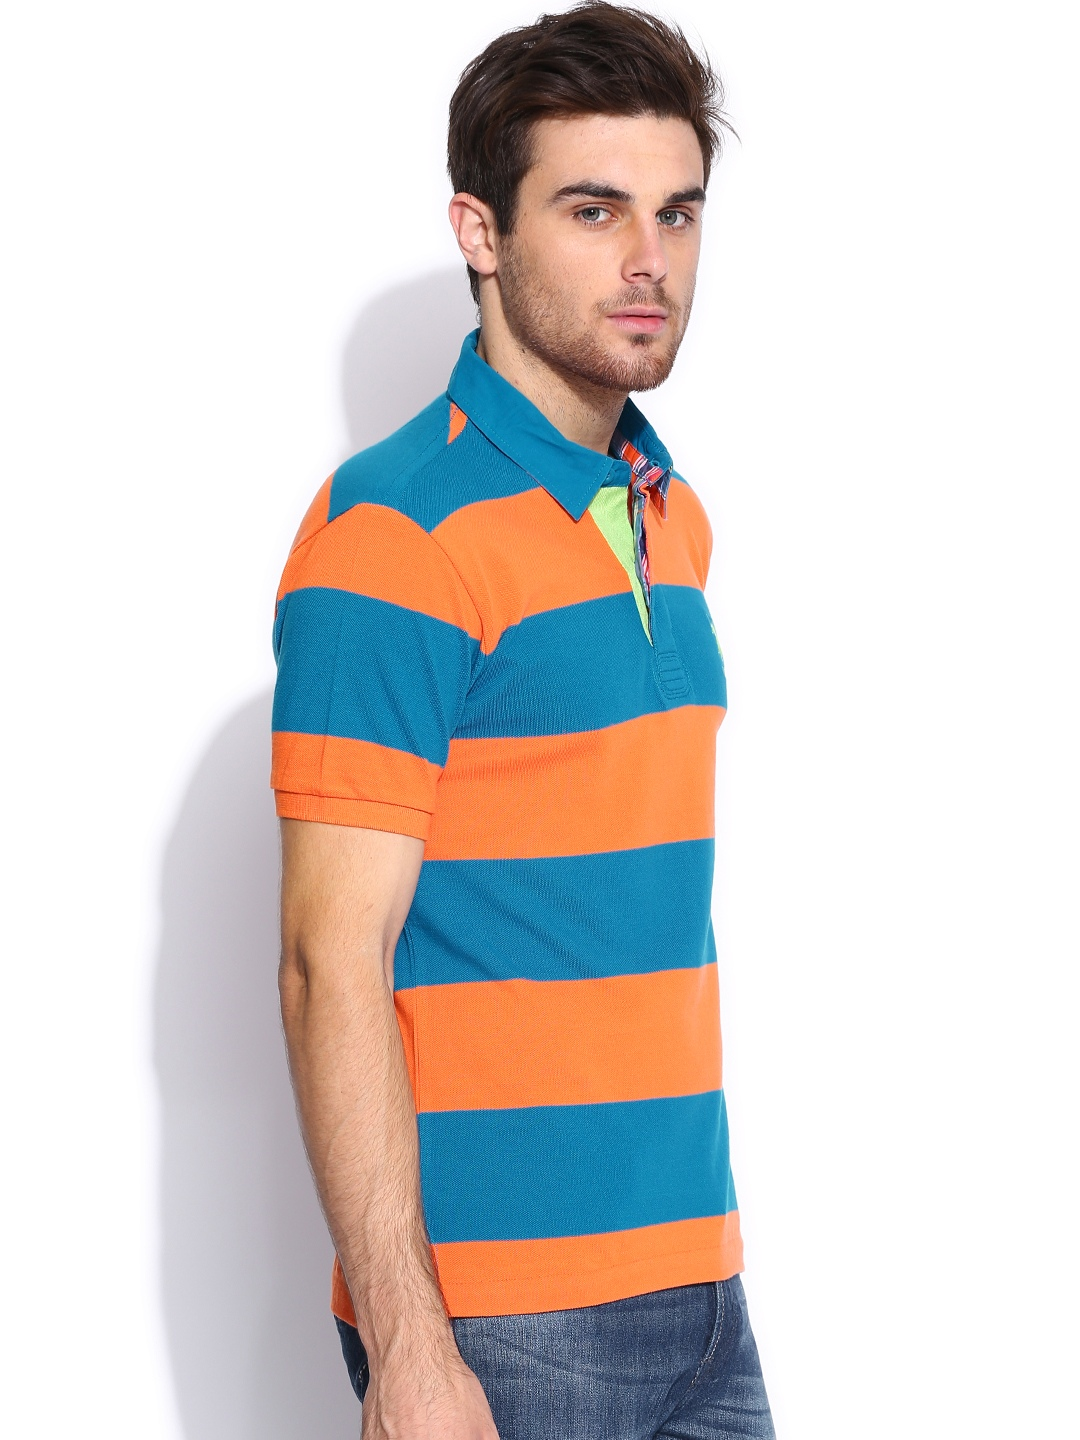 You don't need a pony for these cool polo shirts. From the beach to the office, our casual yet stylish Blue Orange Men's Polo Shirts make you the talk of the town. We have mens polos and womens polos in a variety of colors and adult sizes, giving you the ever-appealing look and feel you're after.